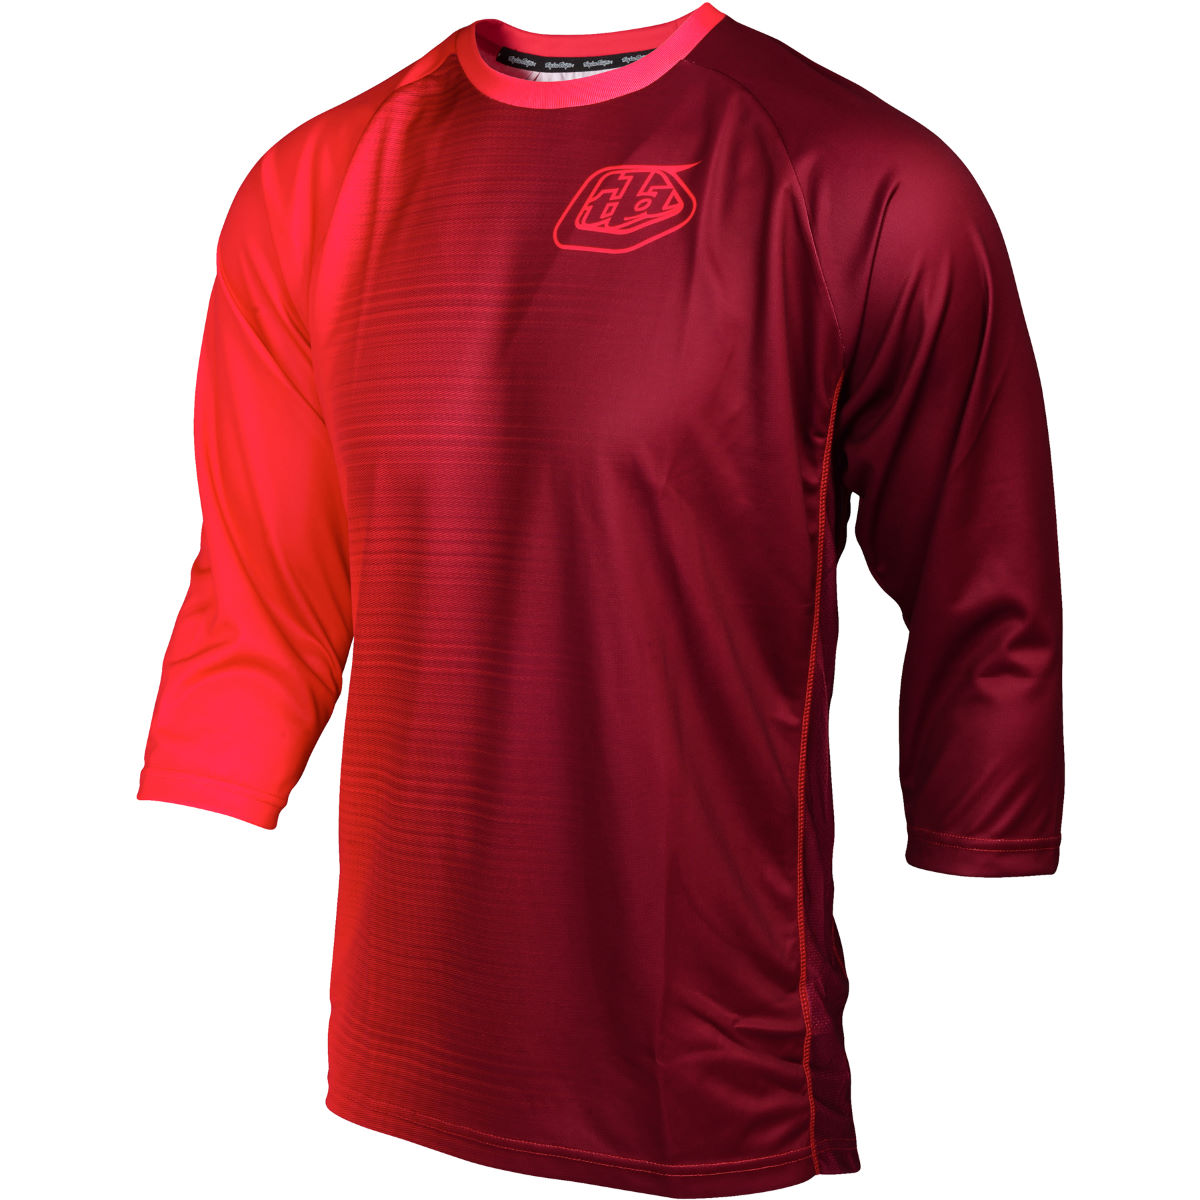 Maillot Troy Lee Designs Ruckus 50/50 - S 50/50 Red